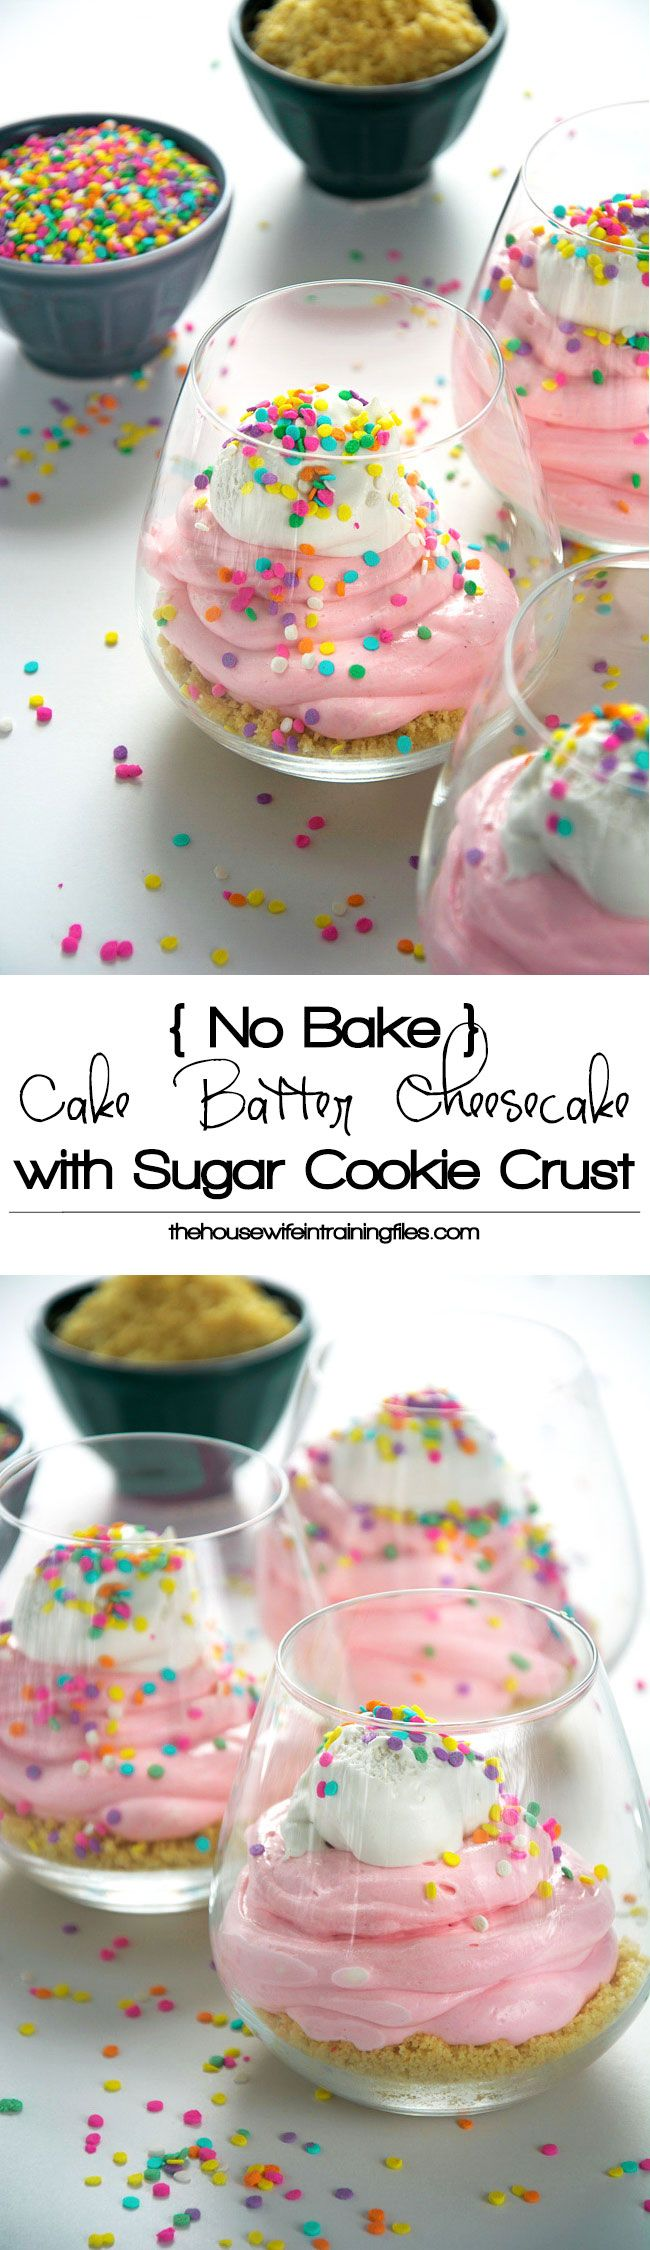 An easy, no bake cake batter cheesecake is healthy and simple to make with greek yogurt, low fat cream cheese, sprinkles and a buttery sugar cookie crust! #cheesecake #nobake #cakebatter #funfetti